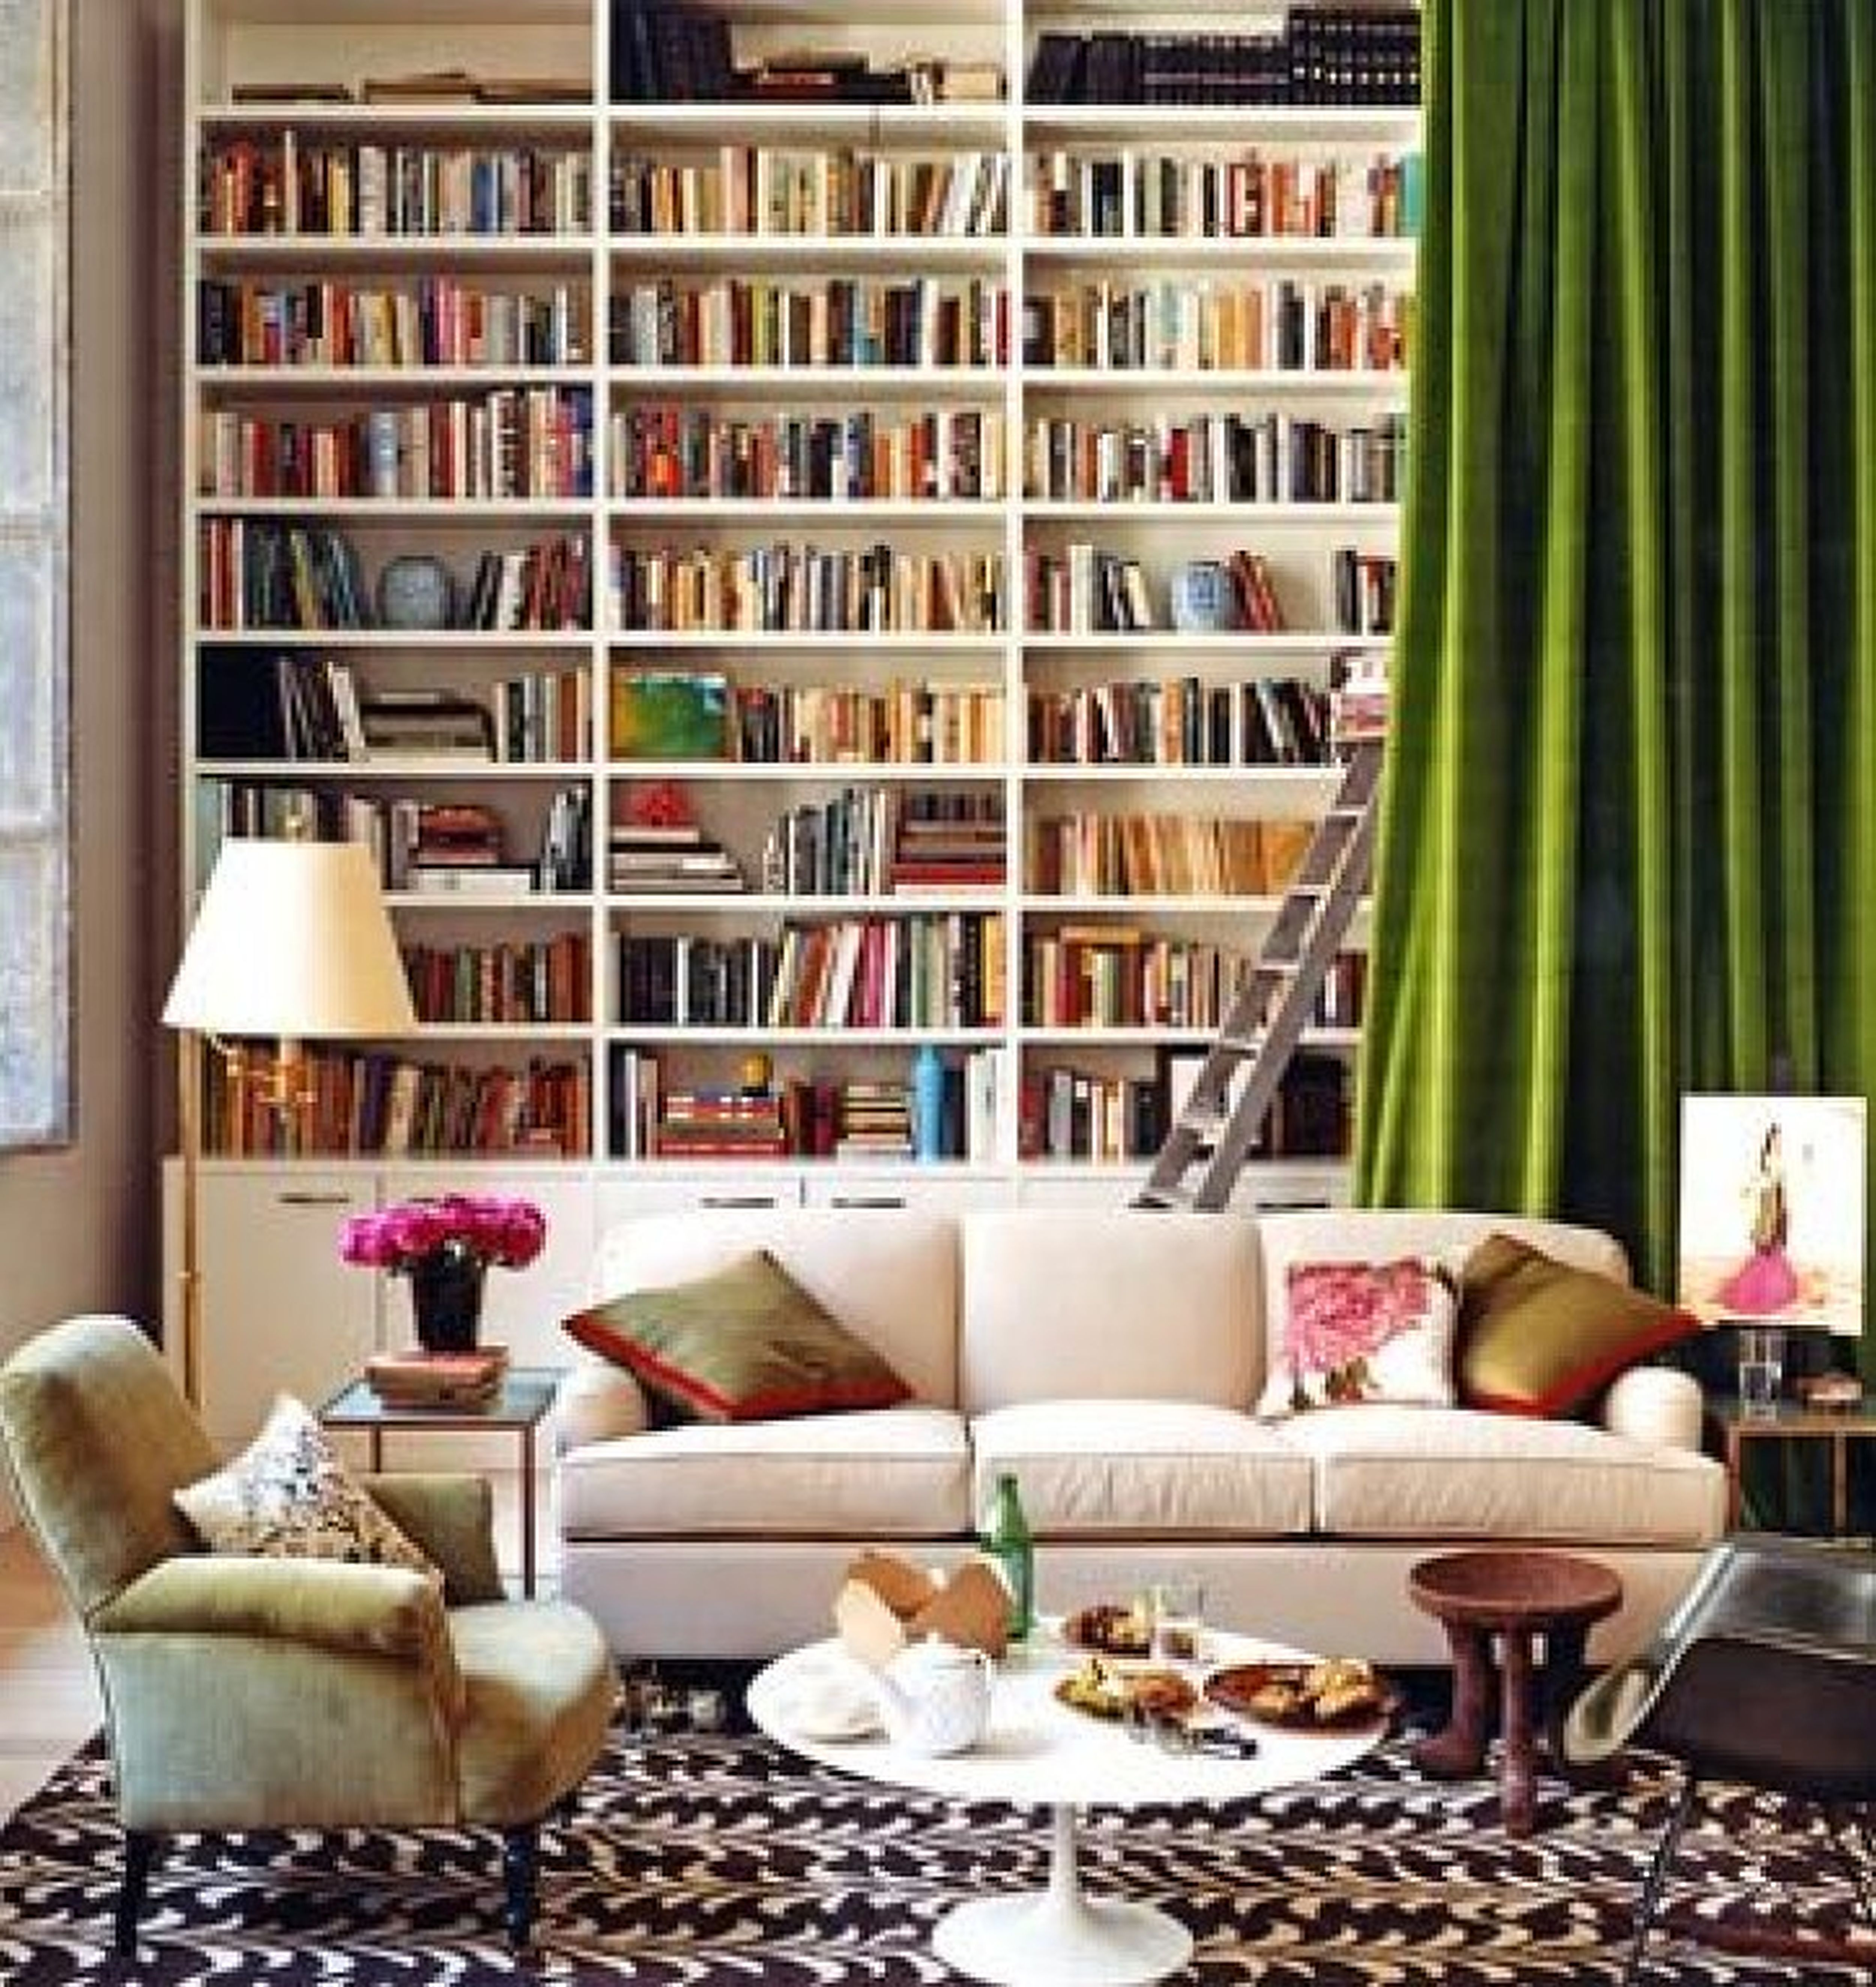 Decorating ideas back panel bookcase and pottery shelf divine